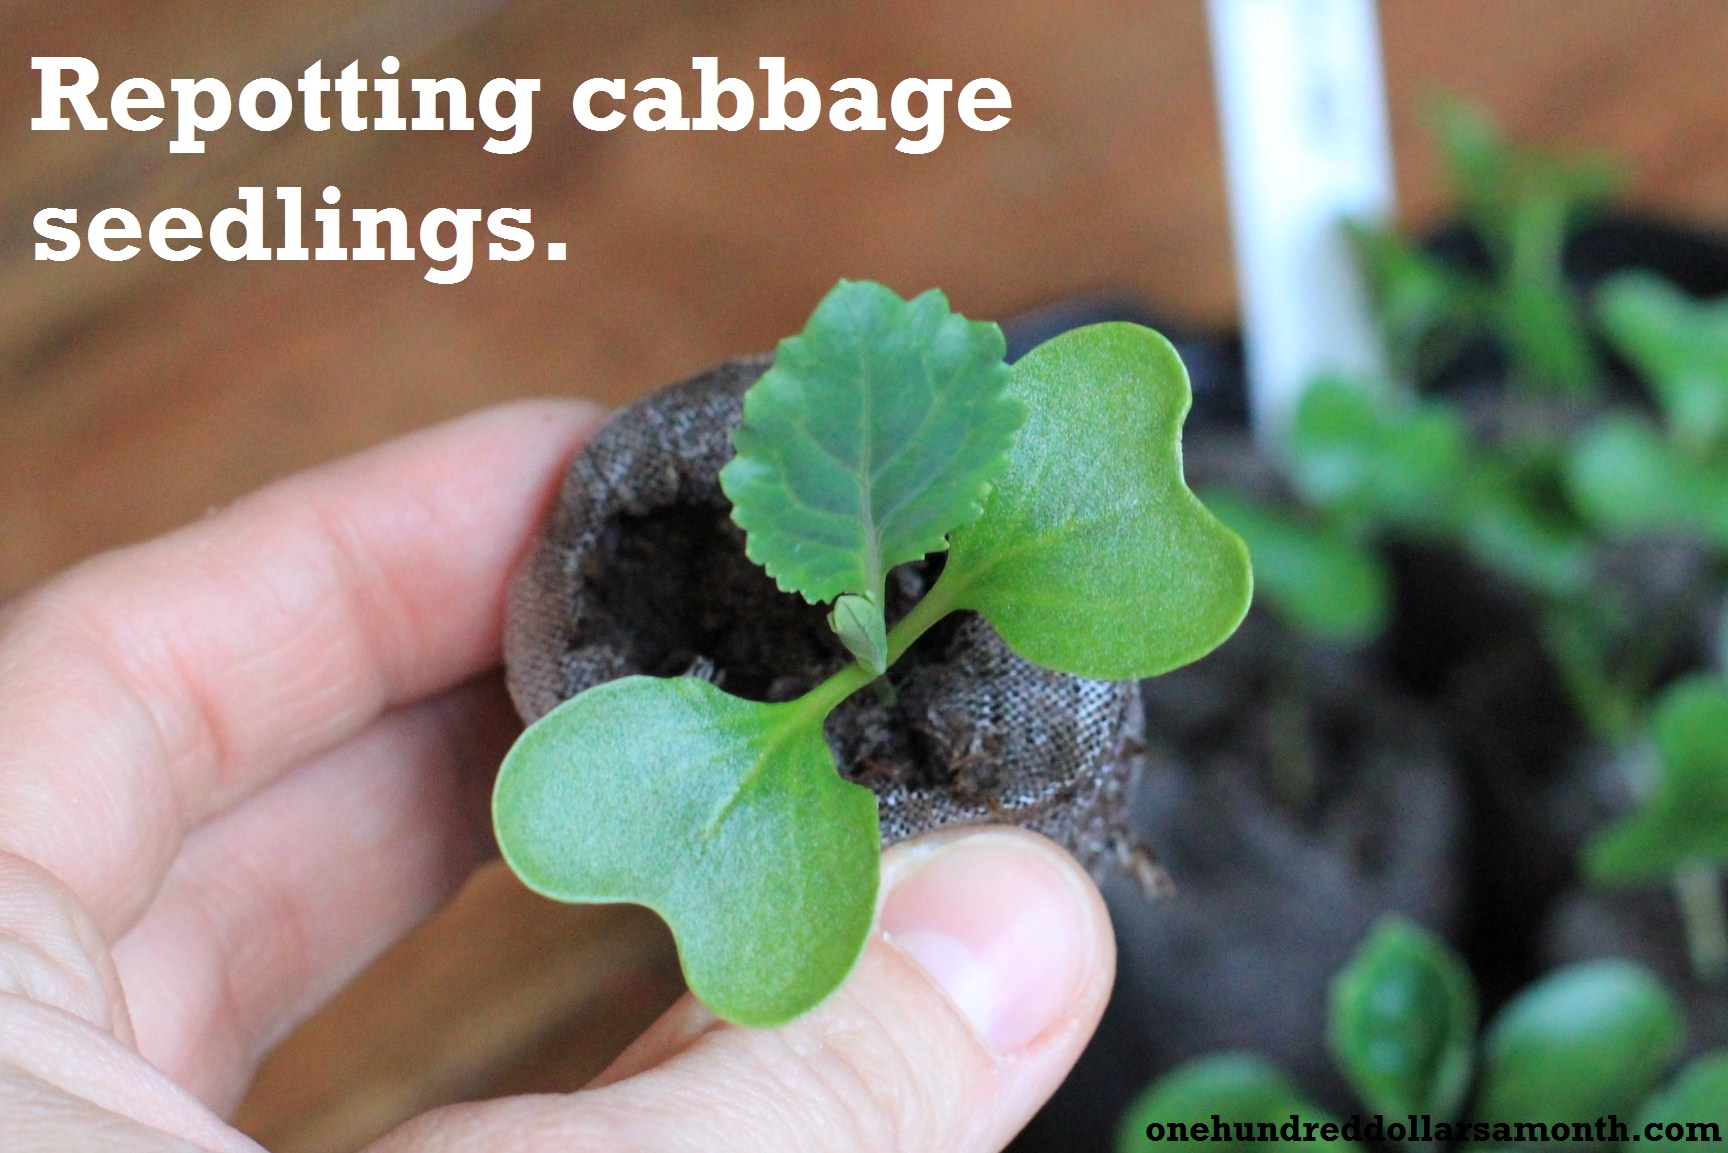 How to Grow Your Own Food: Repotting & Thinning Seedlings